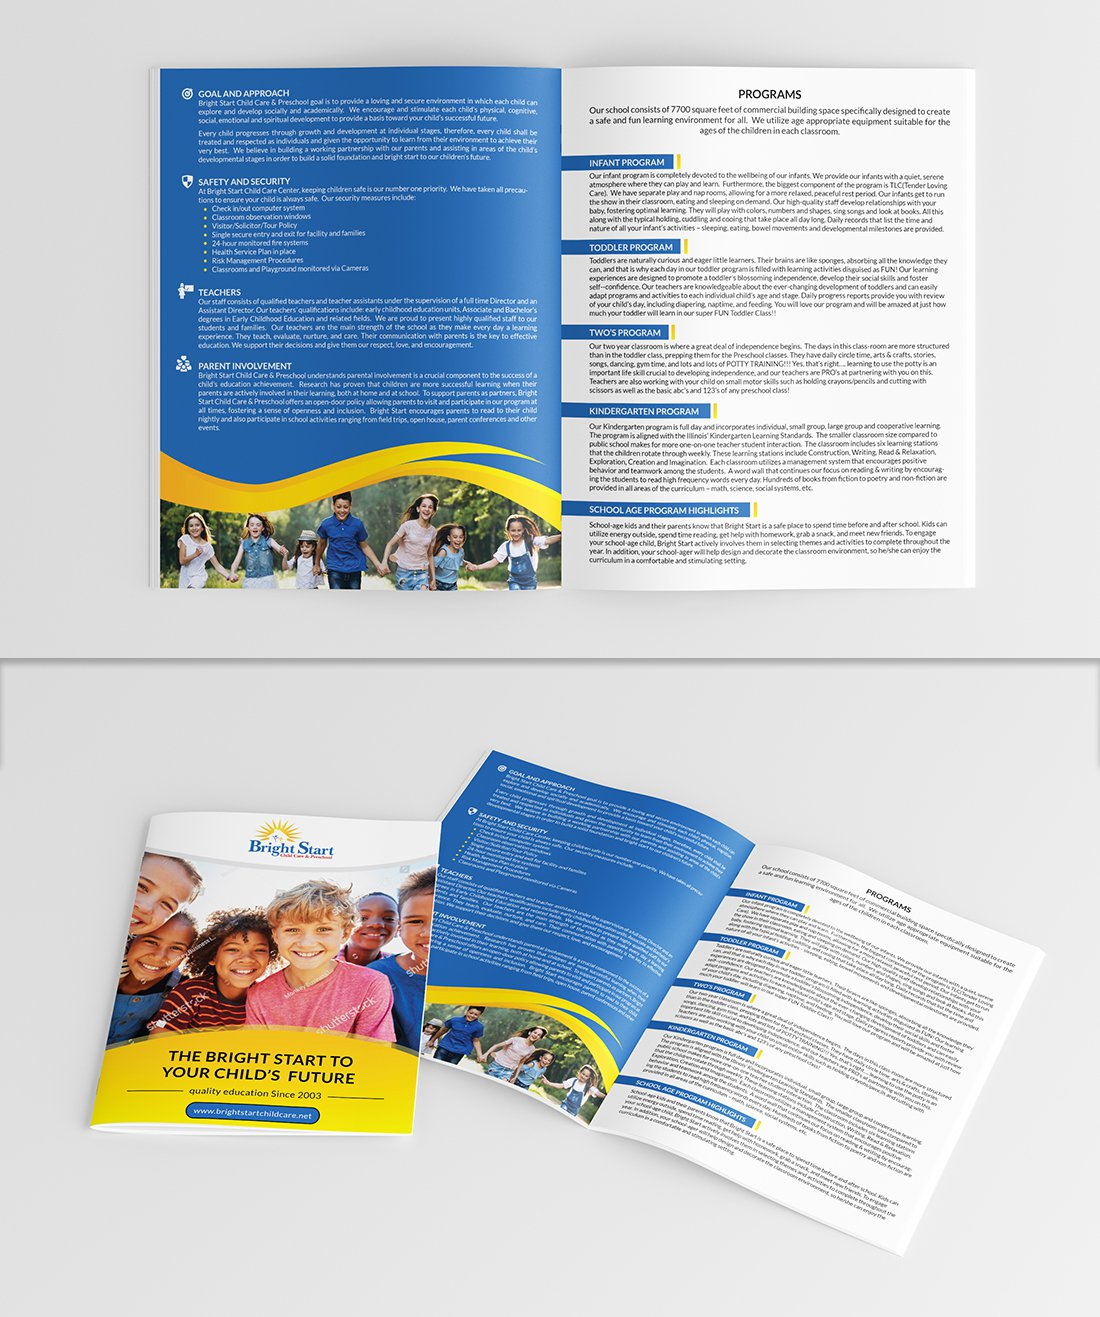 Colorful Playful Childcare Flyer Design For A Company By Axmal Etalon Design 19738728